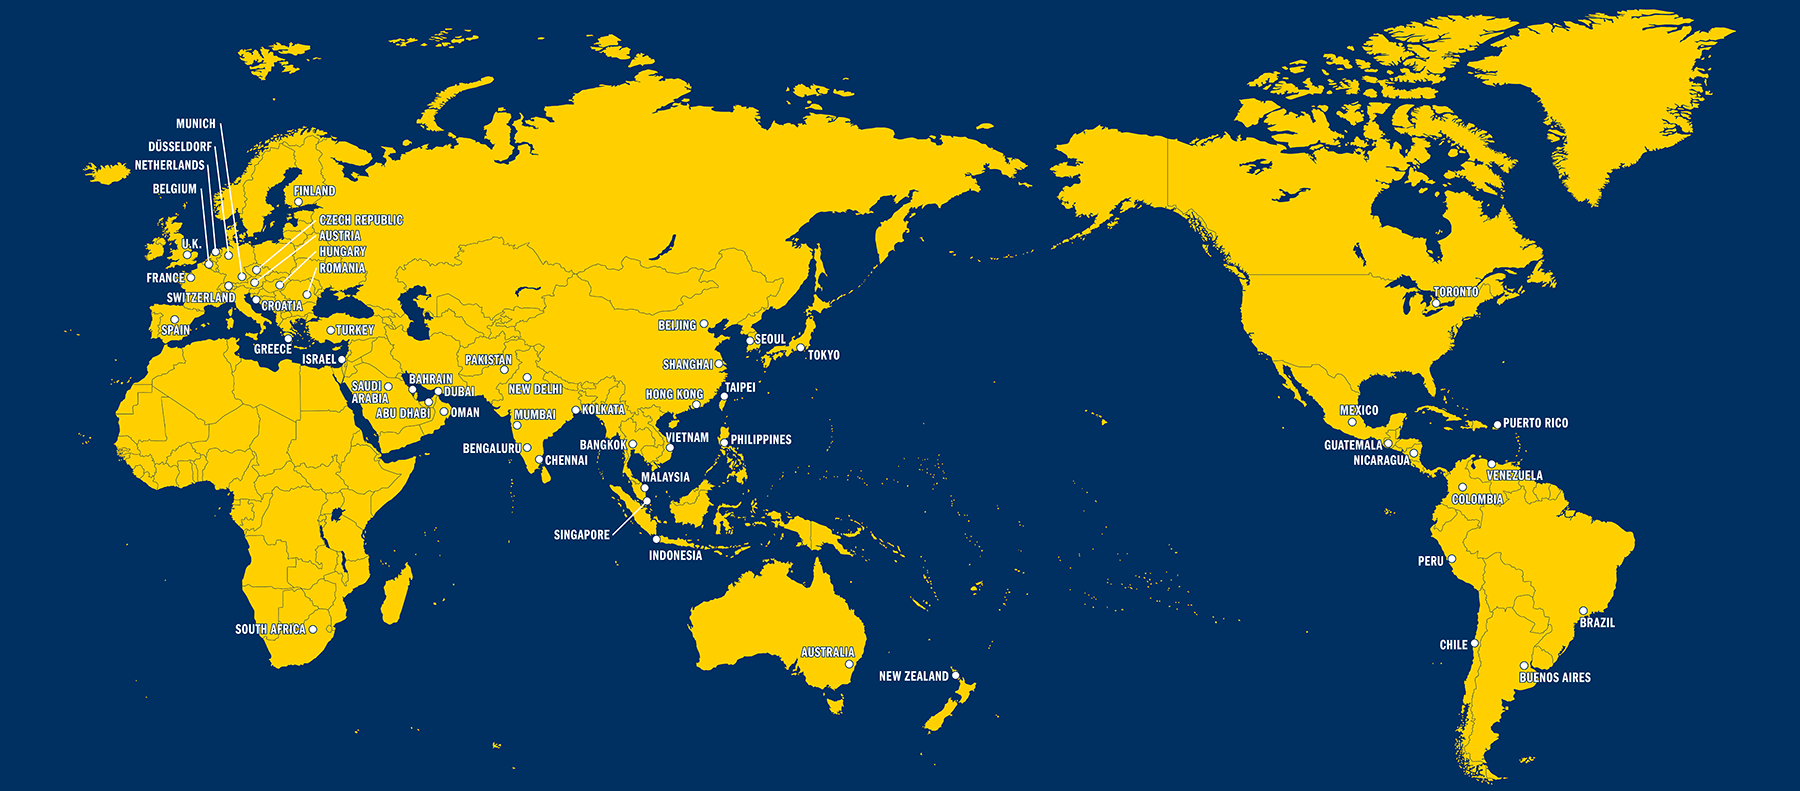 University of Michigan Clubs around the world